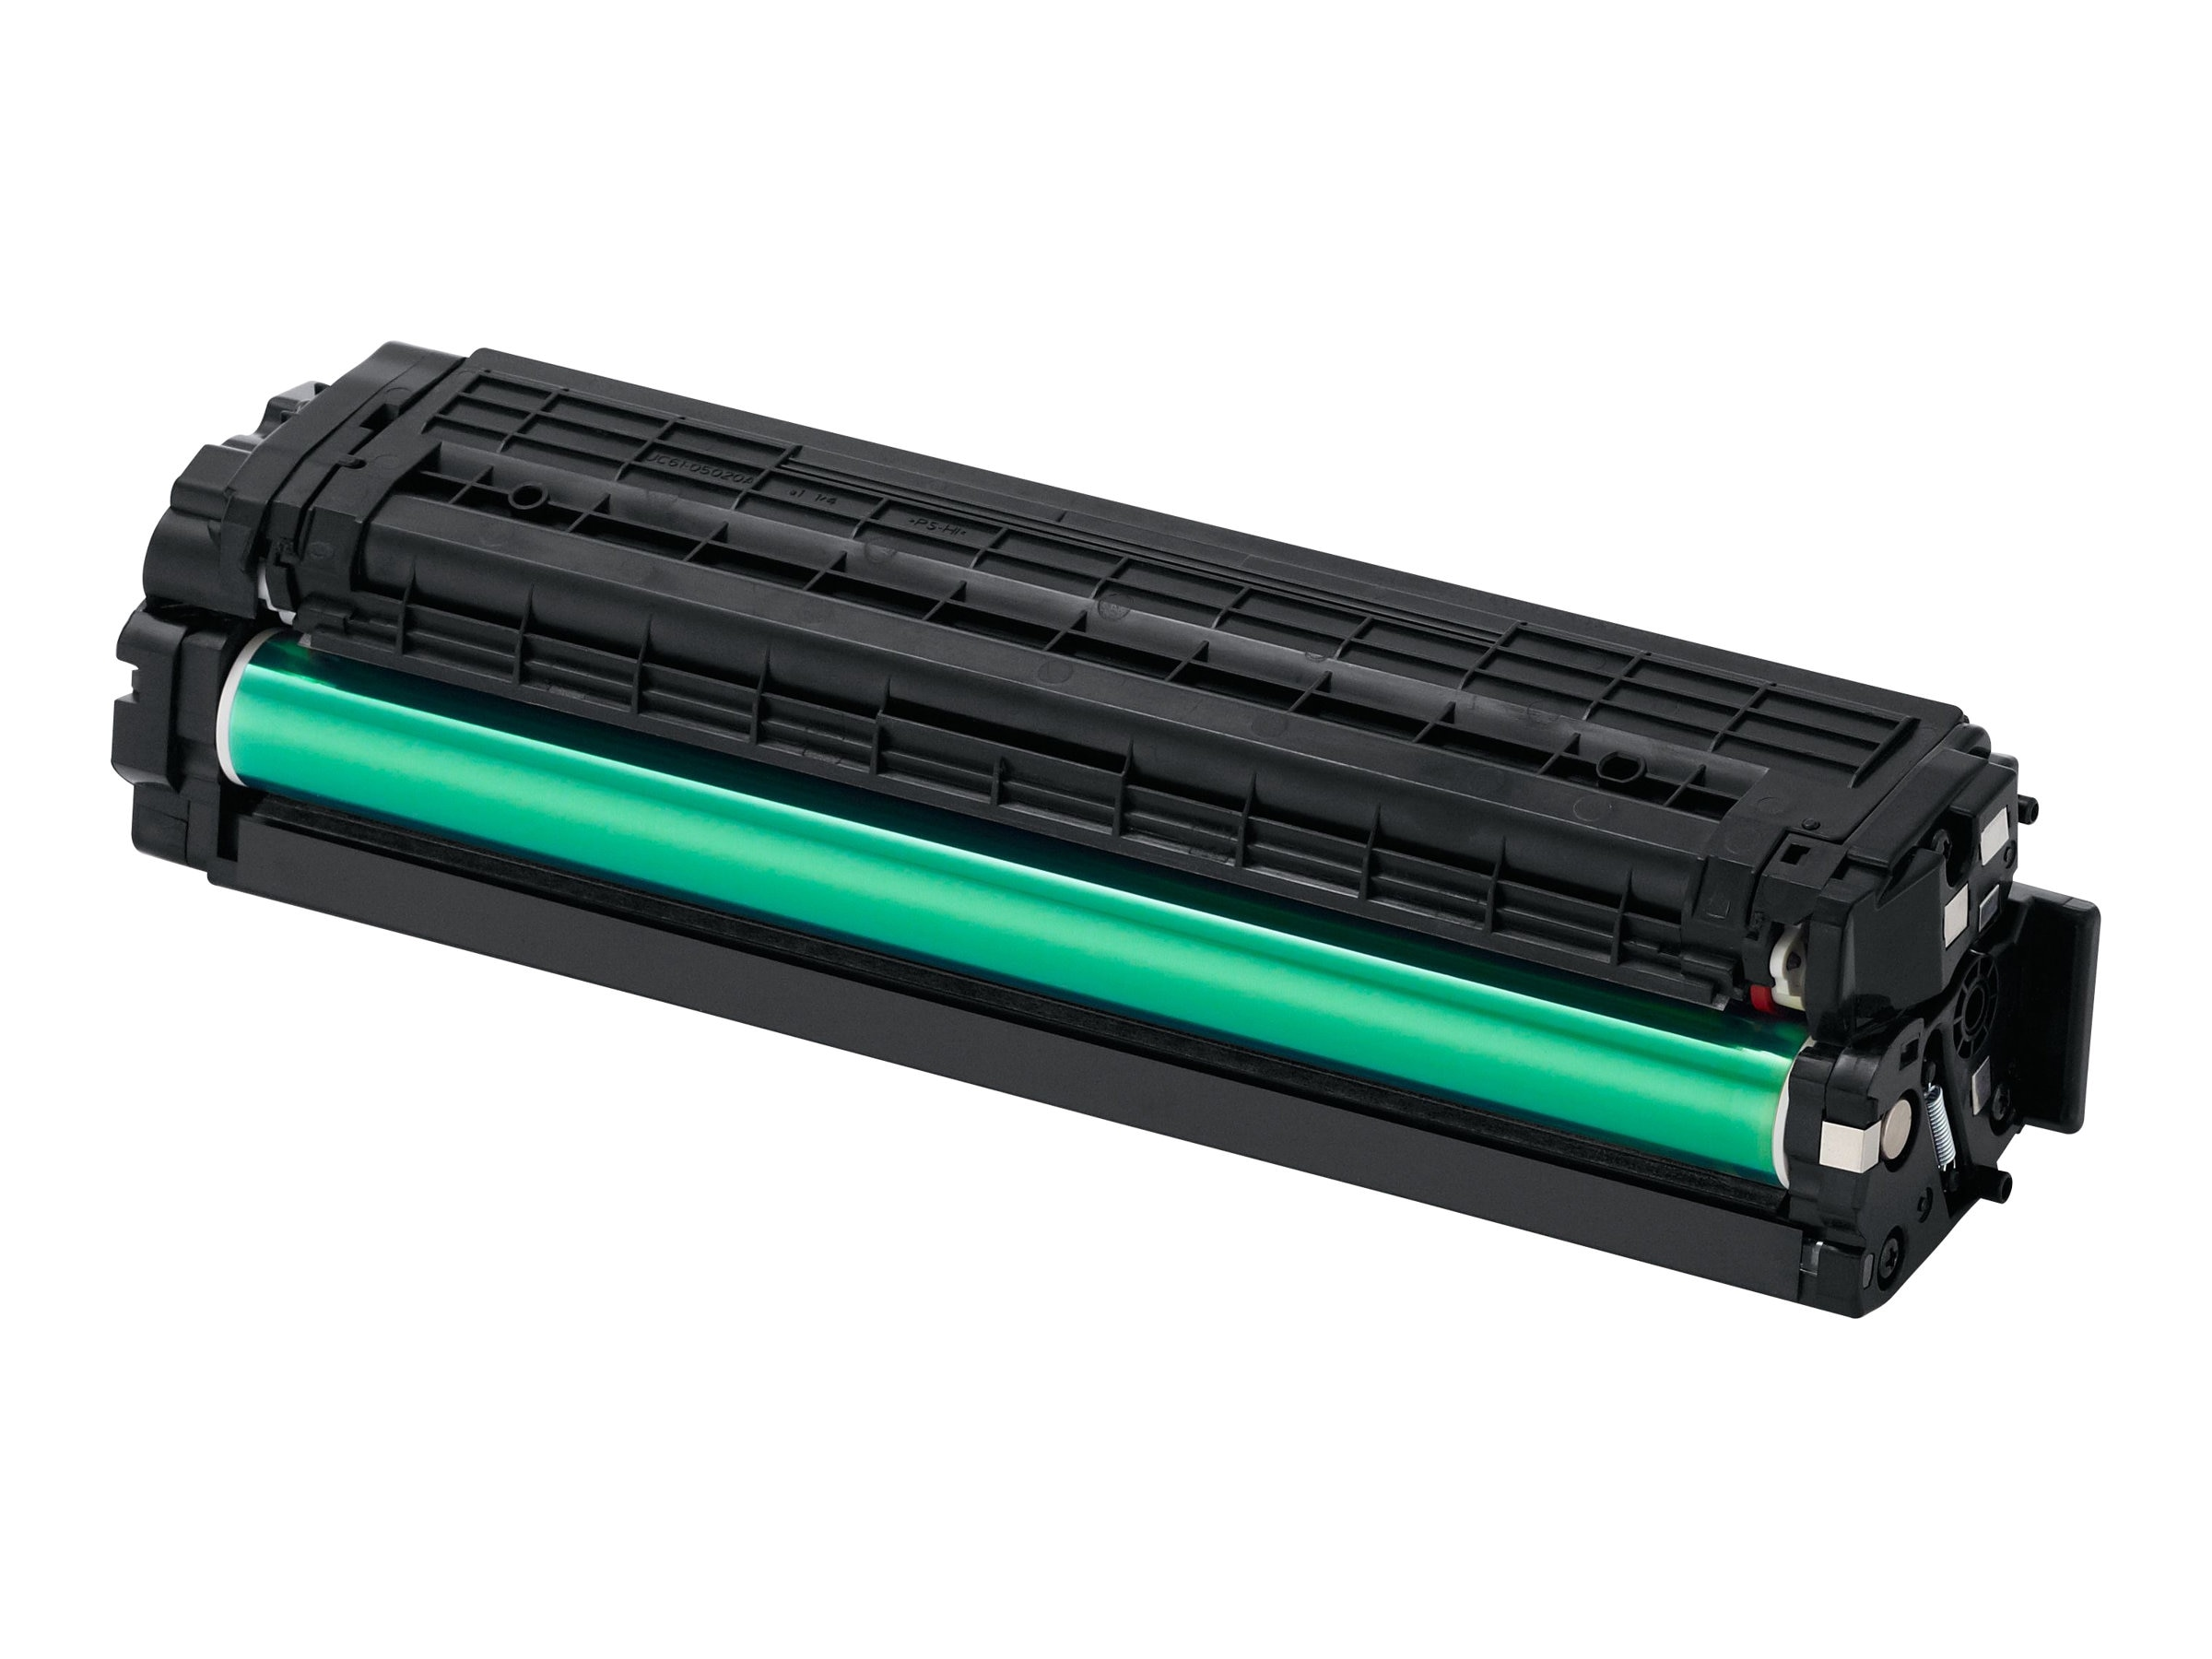 Samsung Yellow Toner Cartridge for CLP-415NW Color Laser Printer &  CLX-4195FW Color Multifunction Printer, CLT-Y504S, 14481079, Toner and Imaging Components